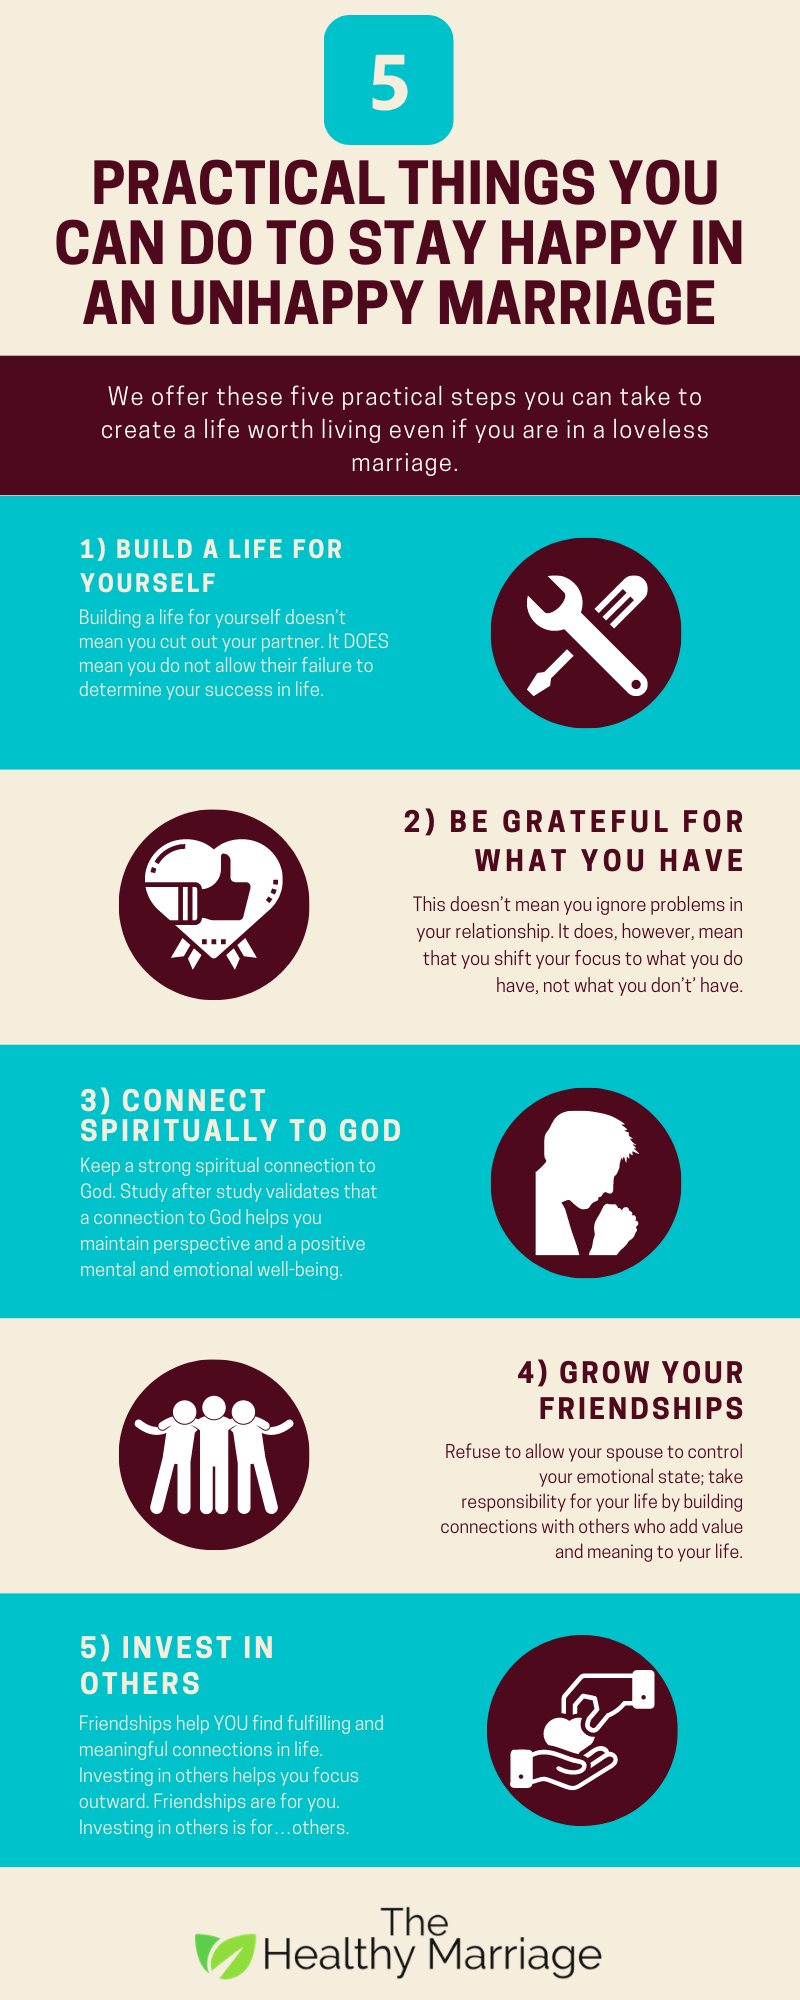 5 Practical Things You Can Do To Stay Happy In An Unhappy Marriage